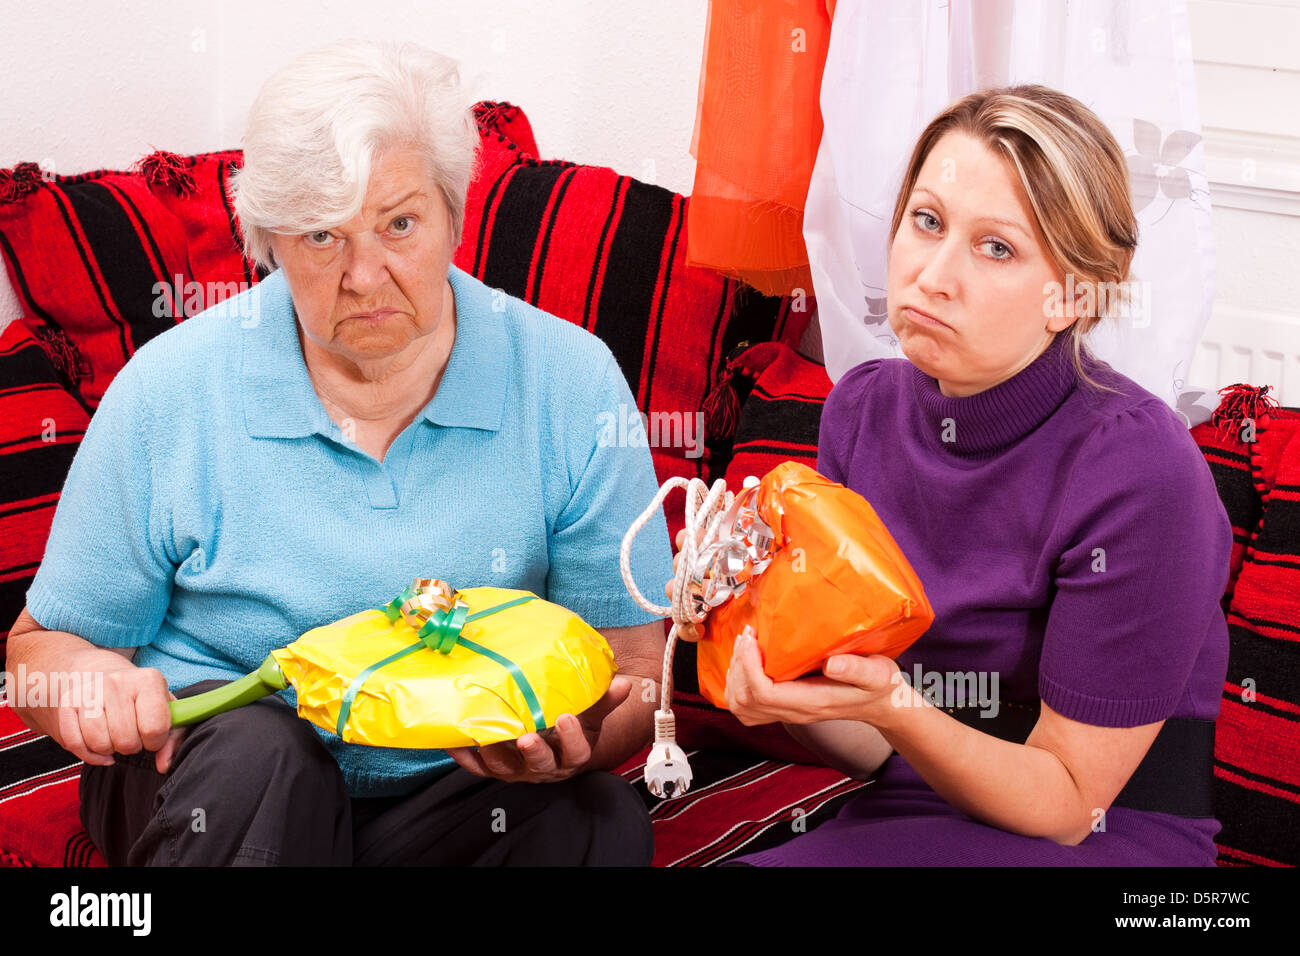 old and young woman are getting uninspired gifts - Stock Image